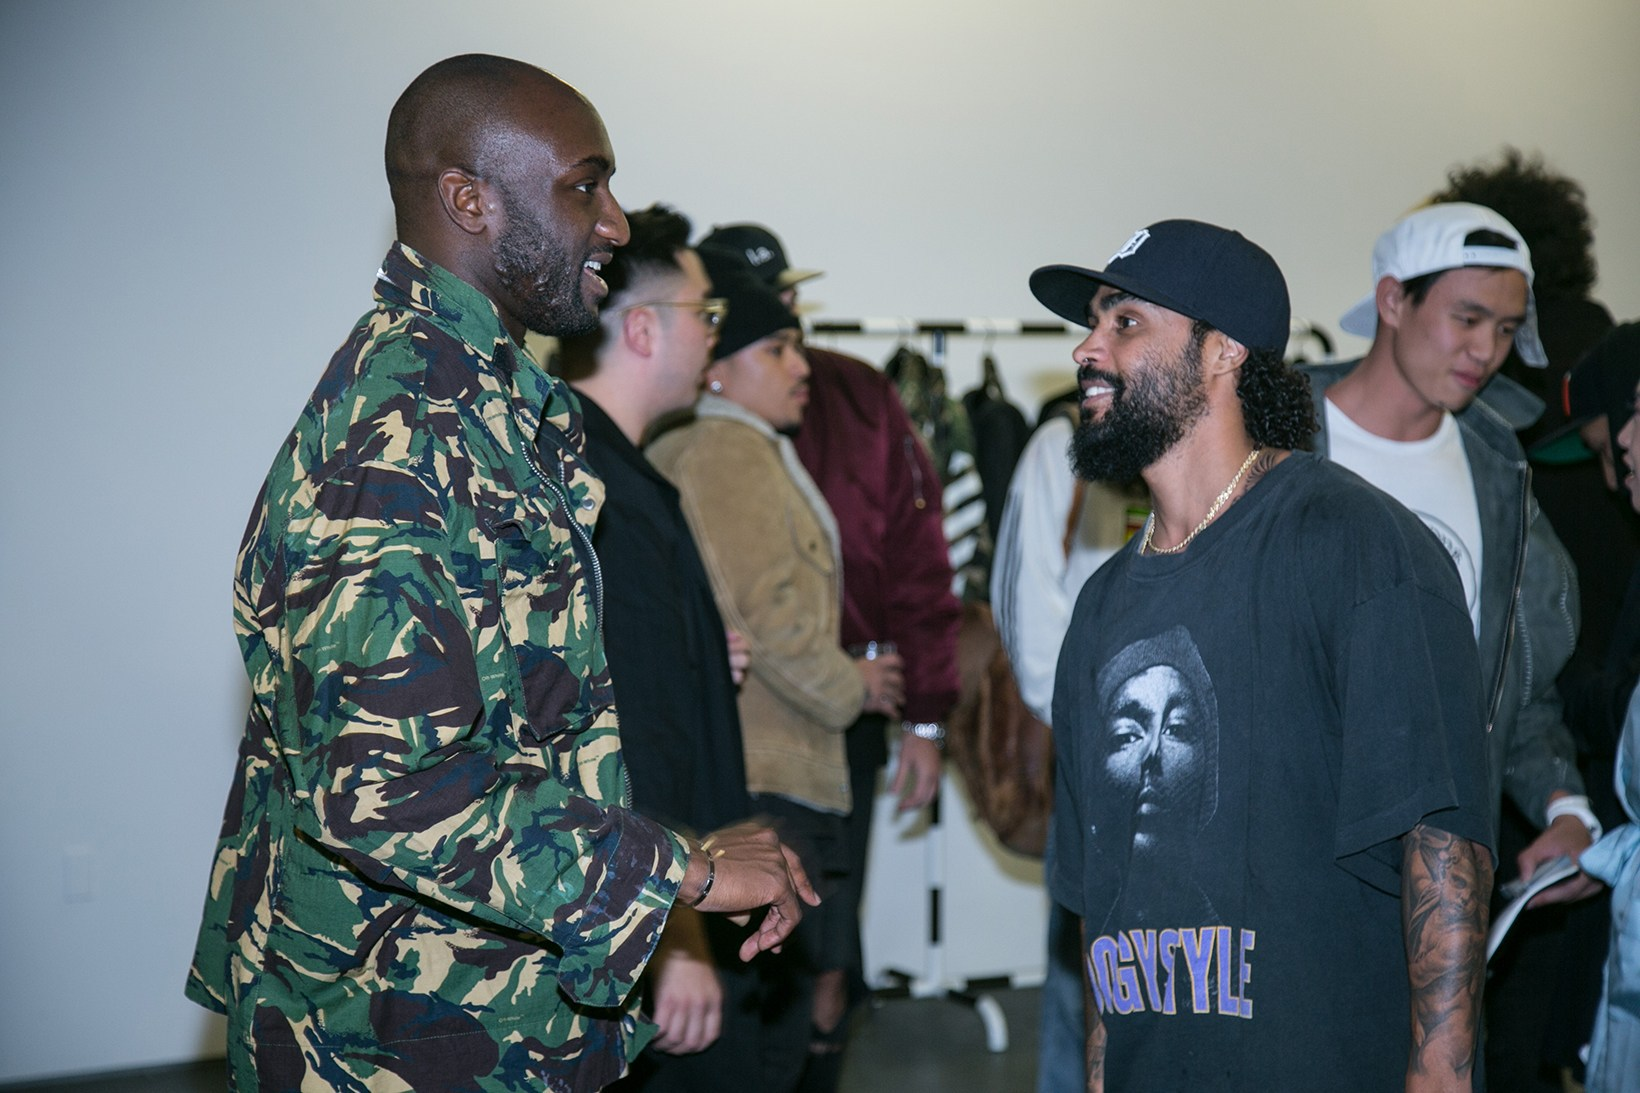 off-white-pop-up-maxfield-photographs-pause21